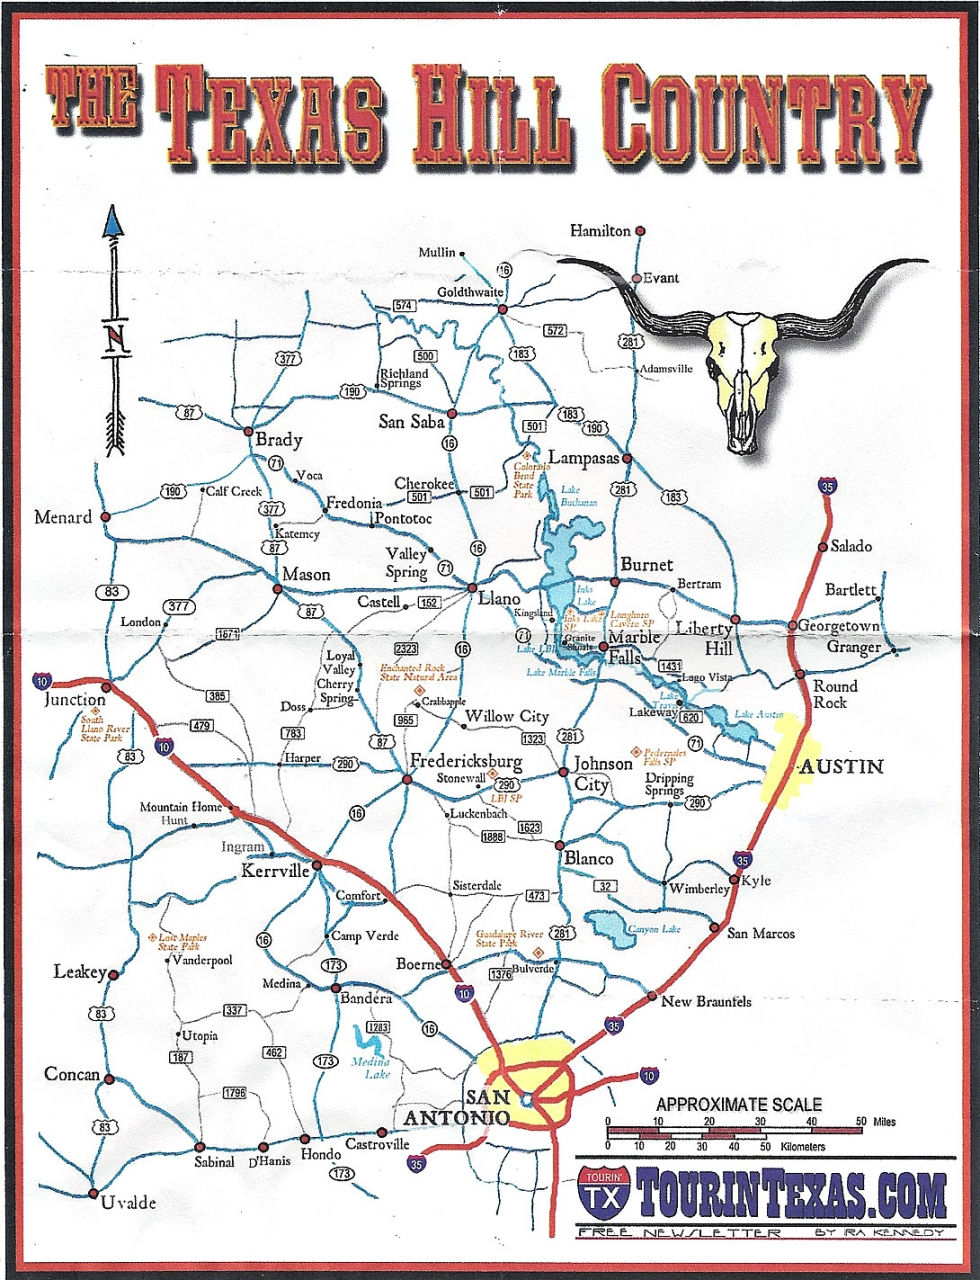 Texas Hill Country Car Shows